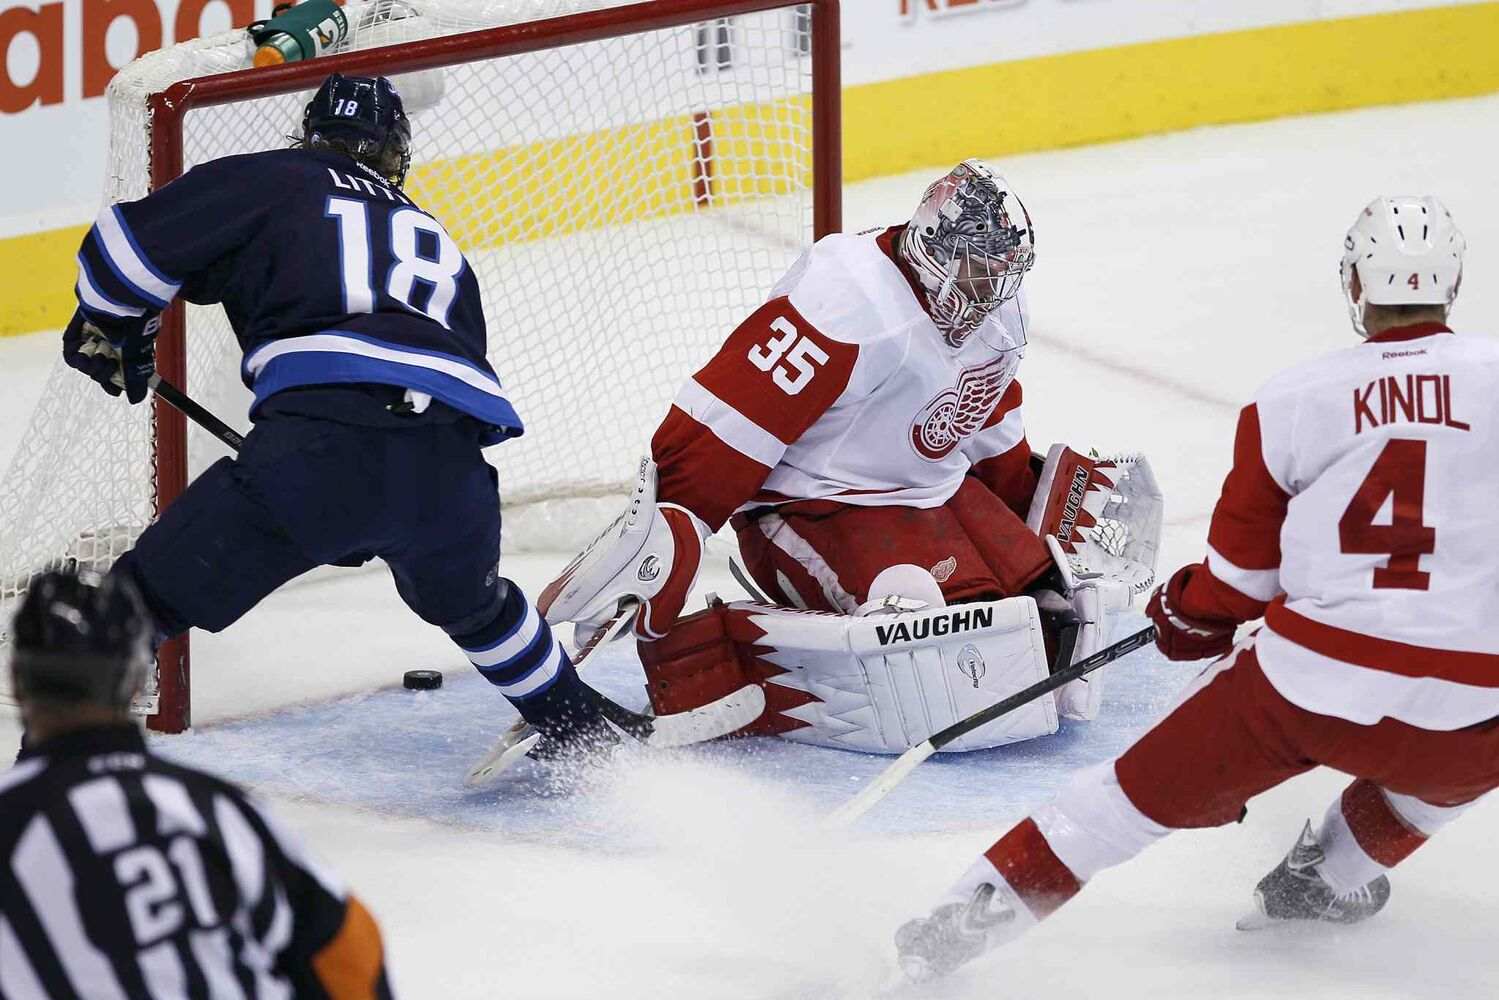 Winnipeg Jets forward Bryan Little (18) scores on a breakaway against Detroit Red Wings goaltender Jimmy Howard as Wings defenceman Jakub Kindl tries to catch up. (JOHN WOODS / THE CANADIAN PRESS)